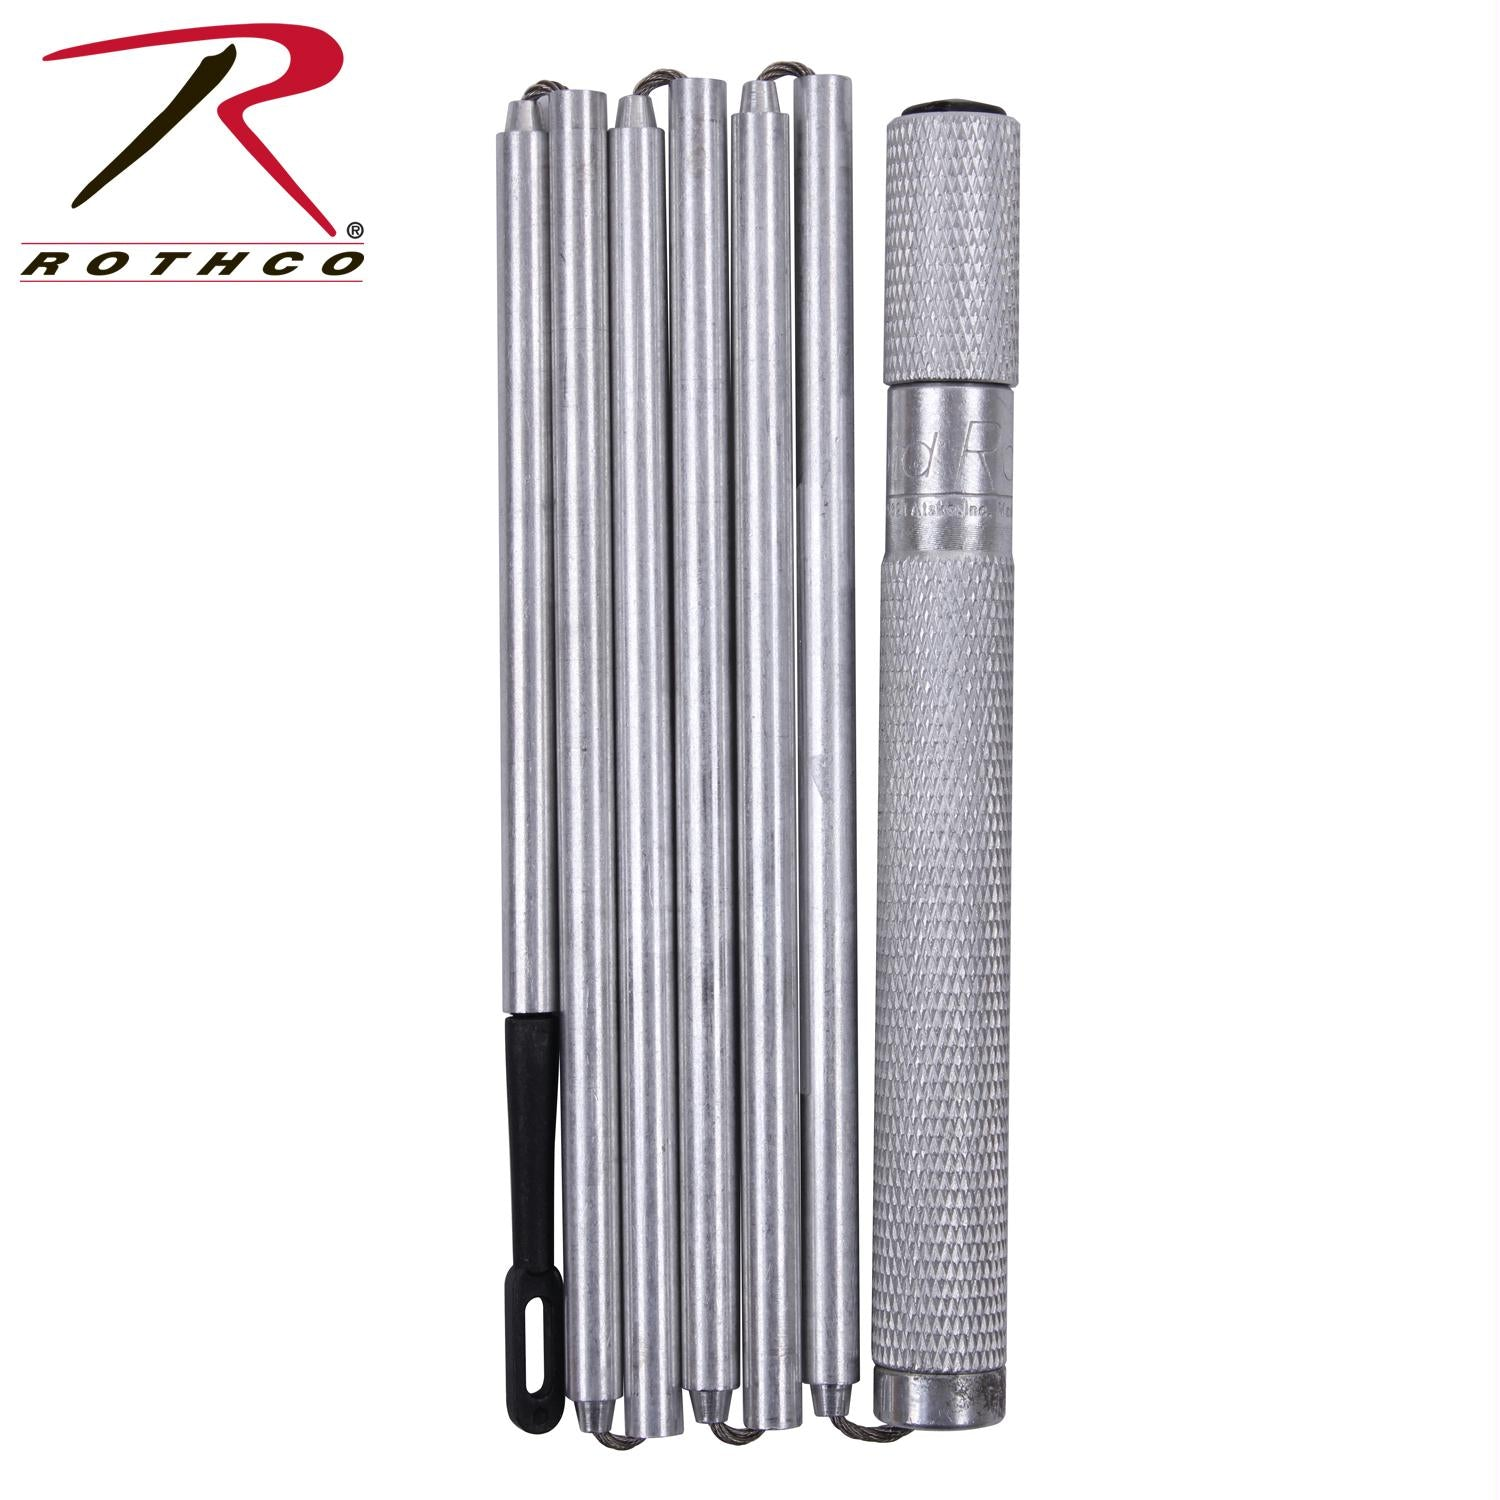 Rapid Rod Collapsible Gun Cleaning Rod